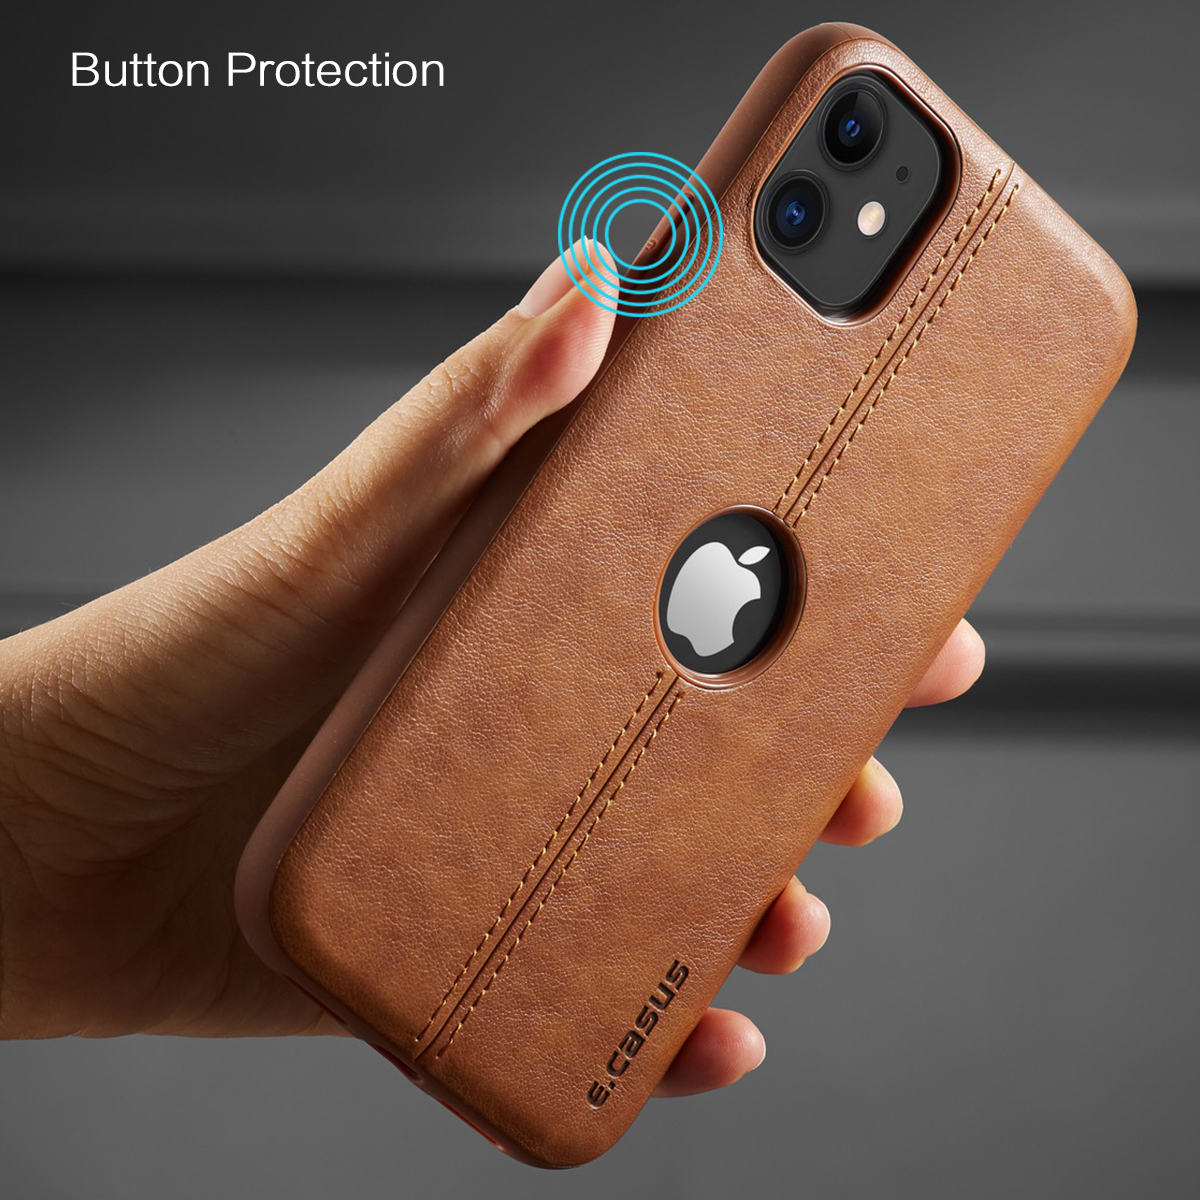 H5d170e3d5d3840fcb46567b4a8c1b114k For iPhone 11 11 Pro 11 Pro Max Case New SLIM Luxury Leather Back Case Cover For iPhone 11 XR XS MAX 8 7 6 Plus Shockproof Case